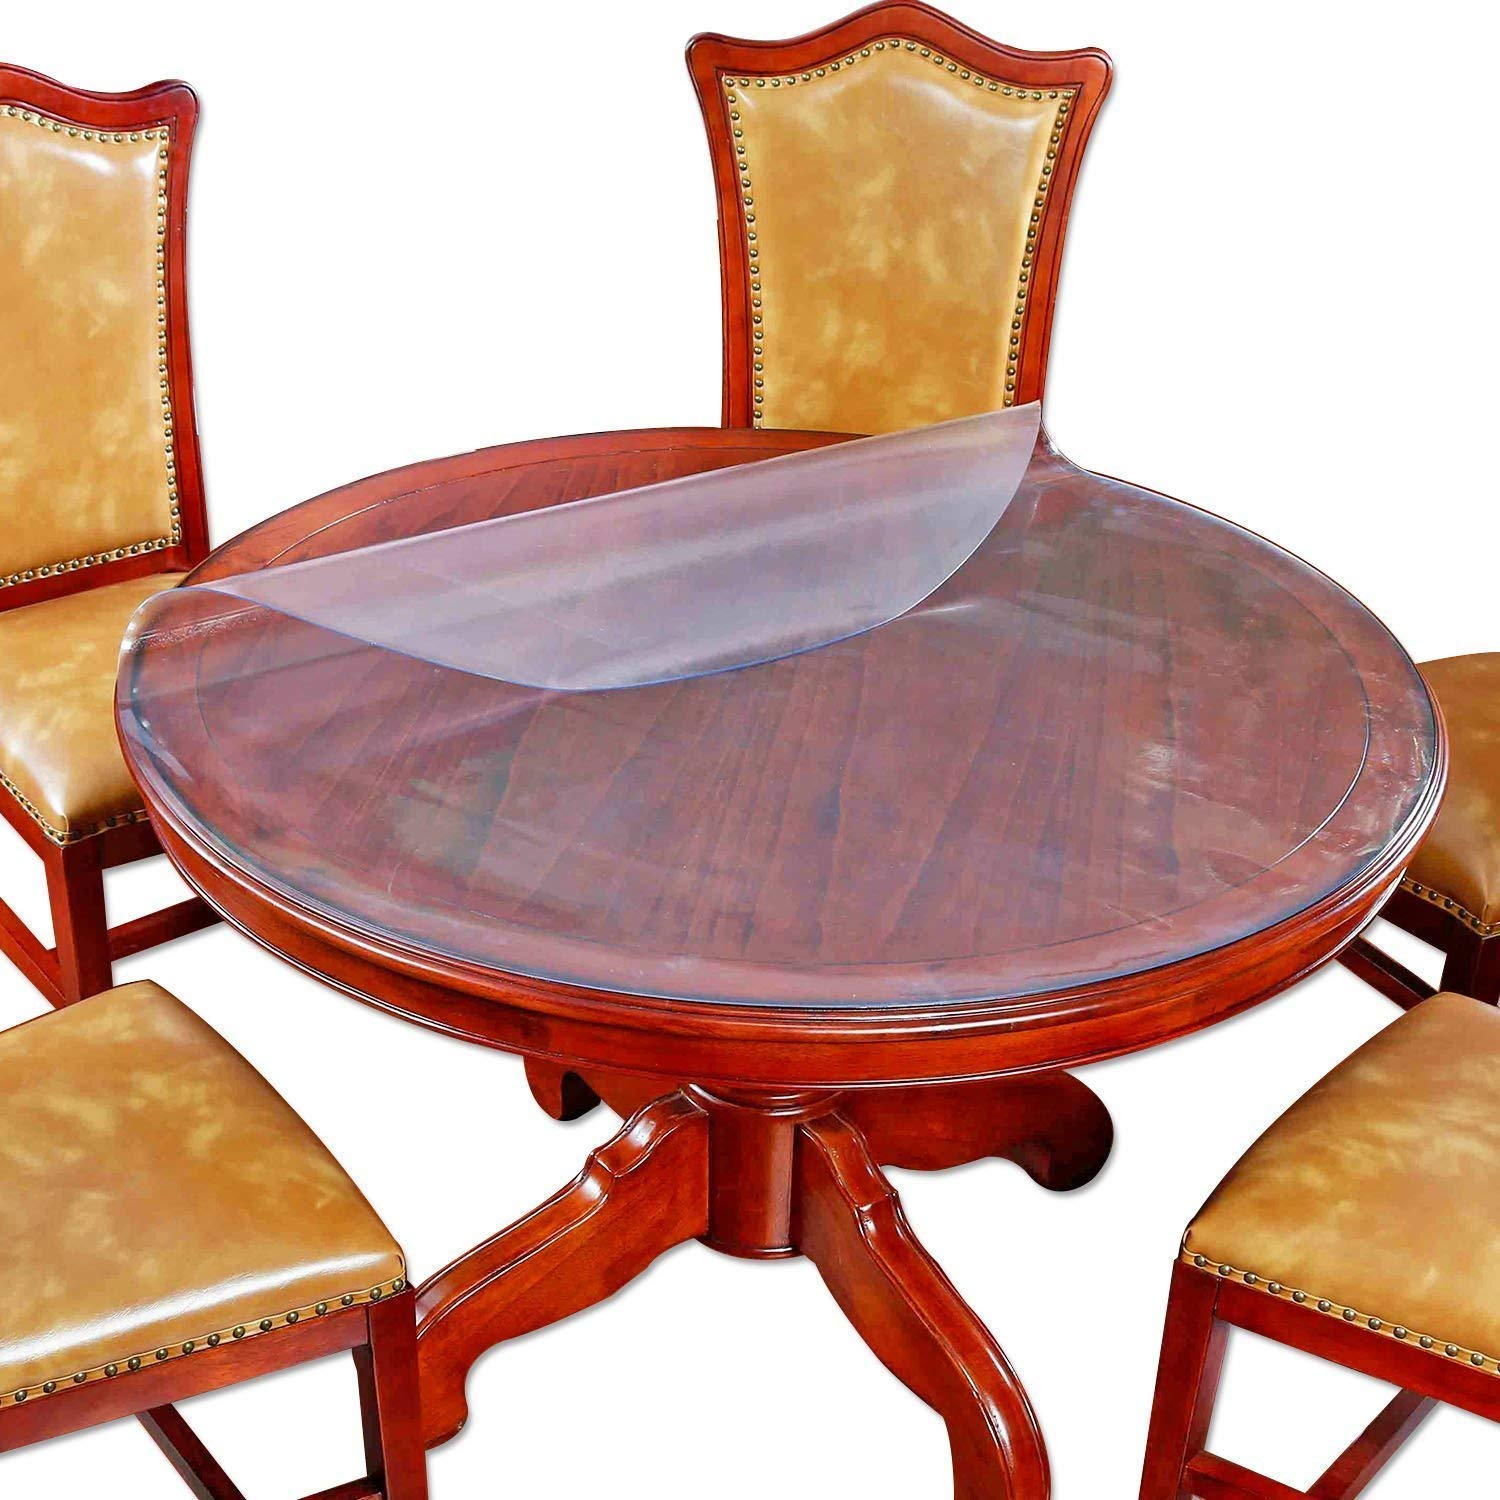 Large Frosted Round Dining Table Protector Furniture Tabletop Protective  Cover Plastic Tablecloth Round Glass Tabletop Wipeable Water Resistant  Chair ...